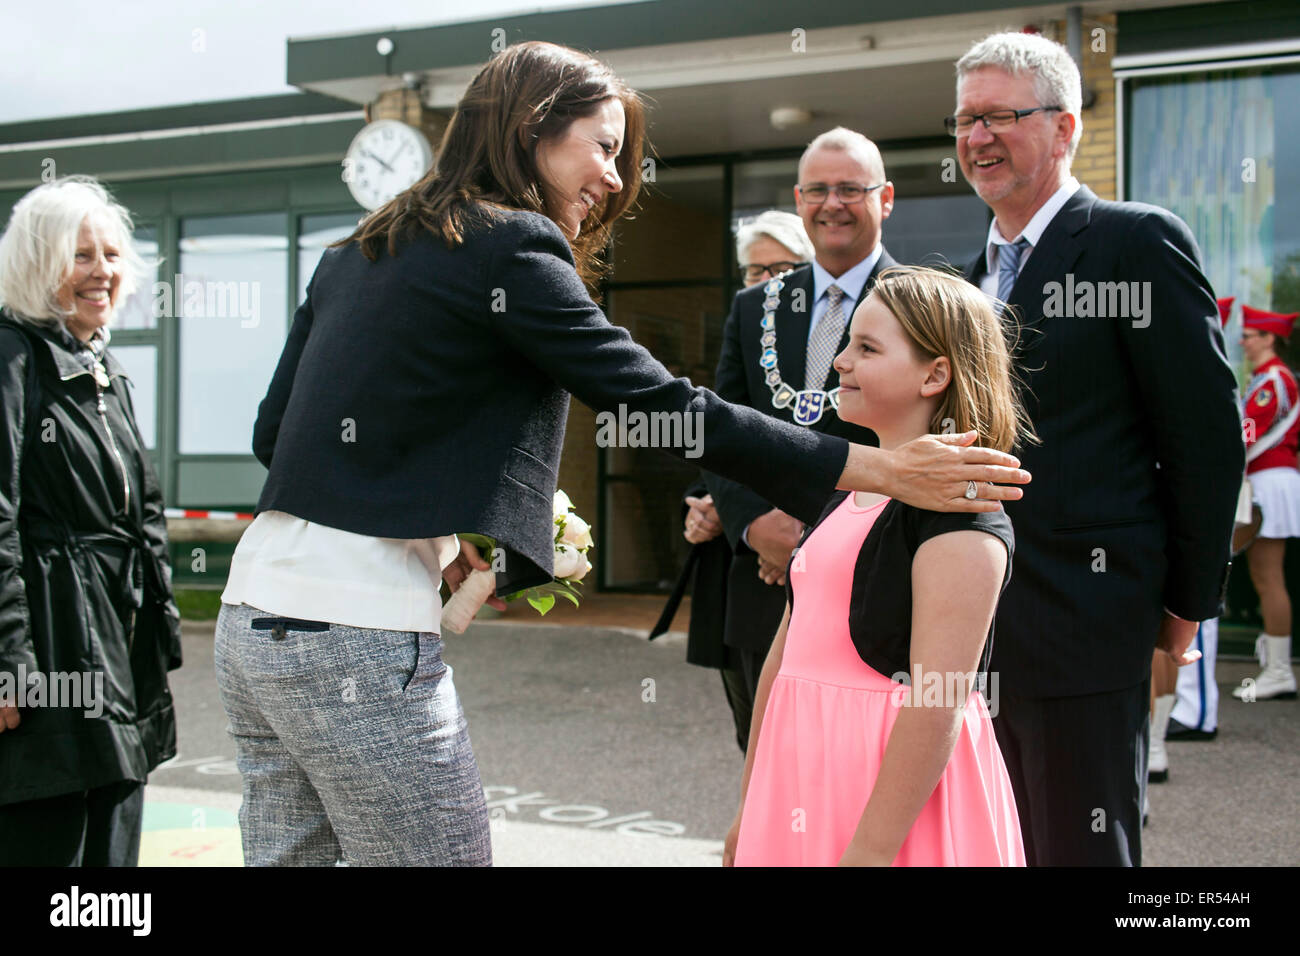 Ruds Vedby, Denmark. 27th May, 2015. Crown Princess Mary thanks for the bouquet which the girl, Issabel, has just - Stock Image